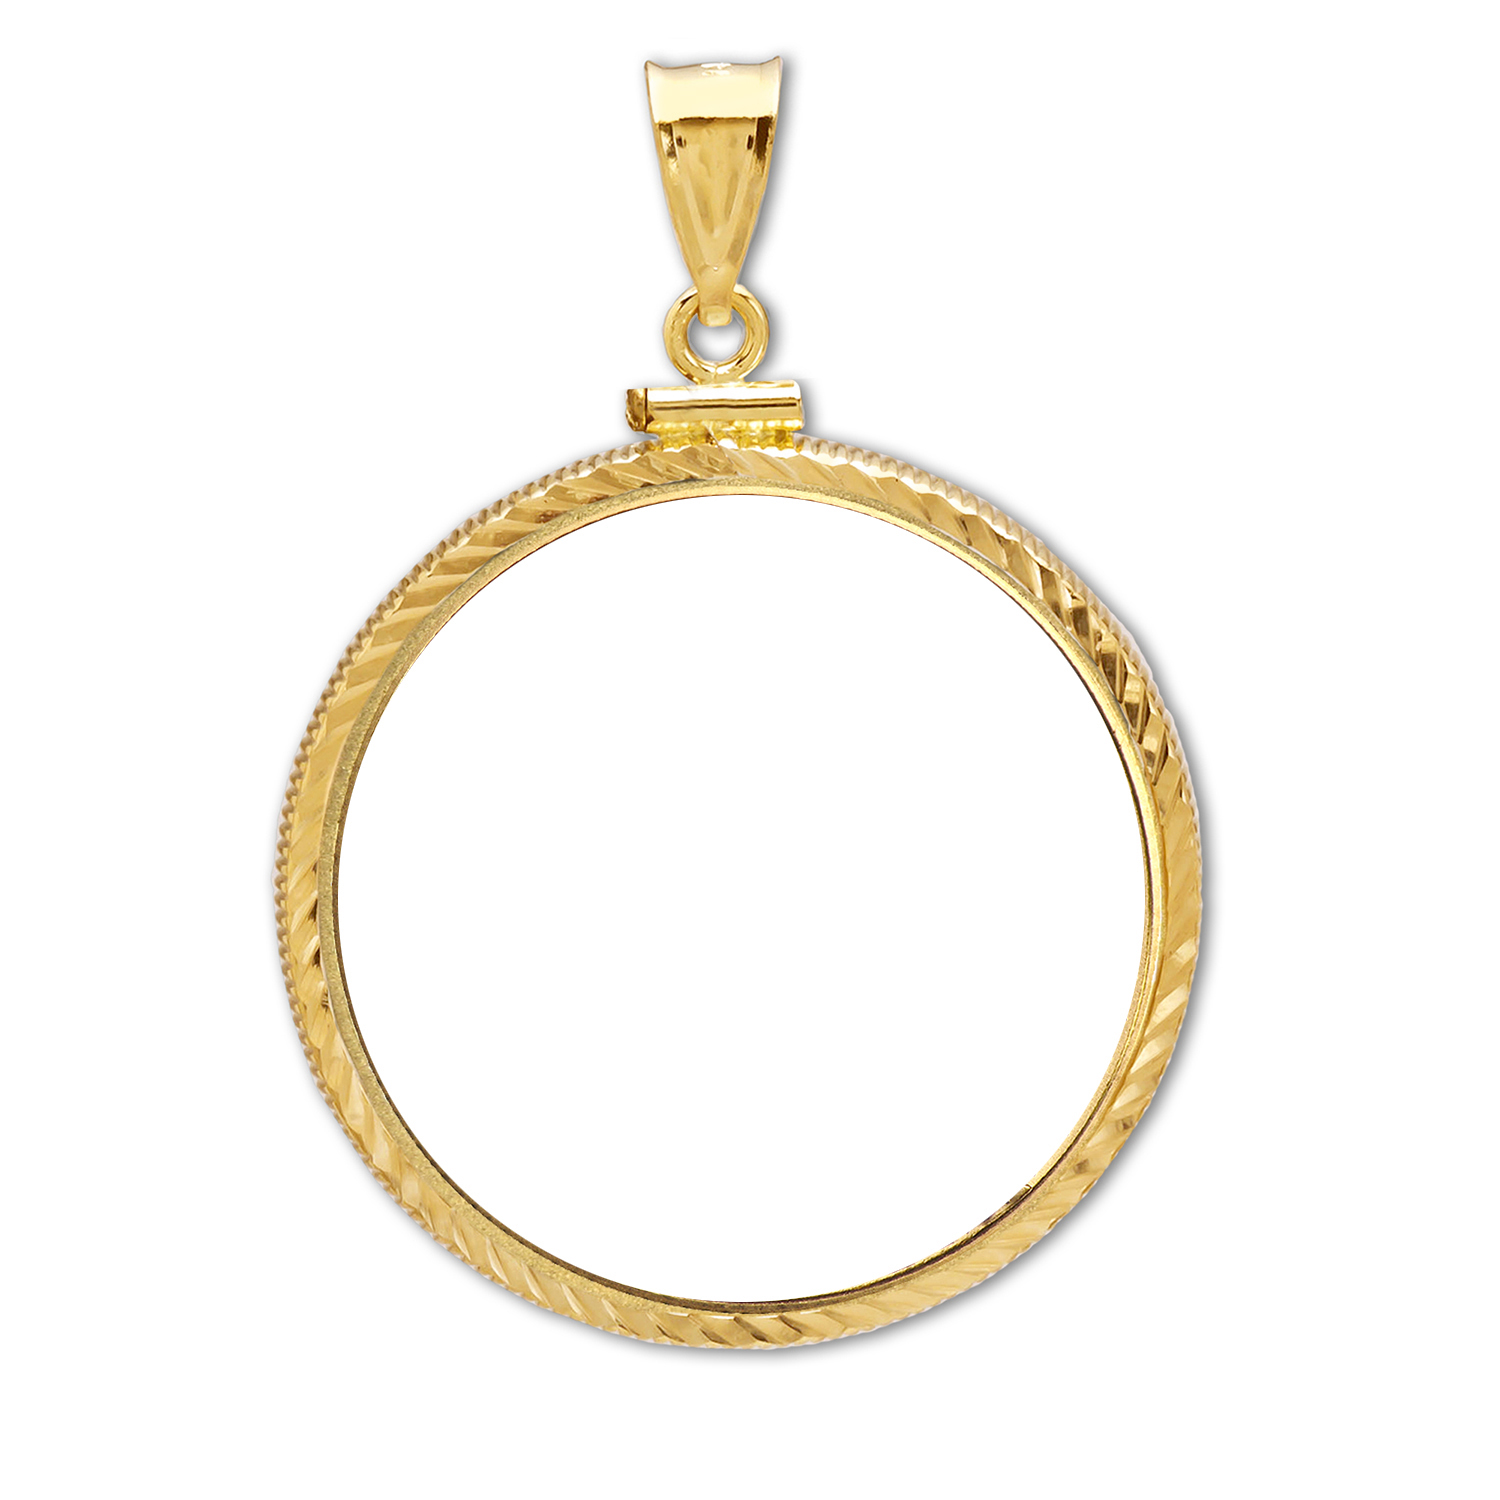 14K Gold Screw-Top Diamond-Cut Coin Bezel - 16 mm